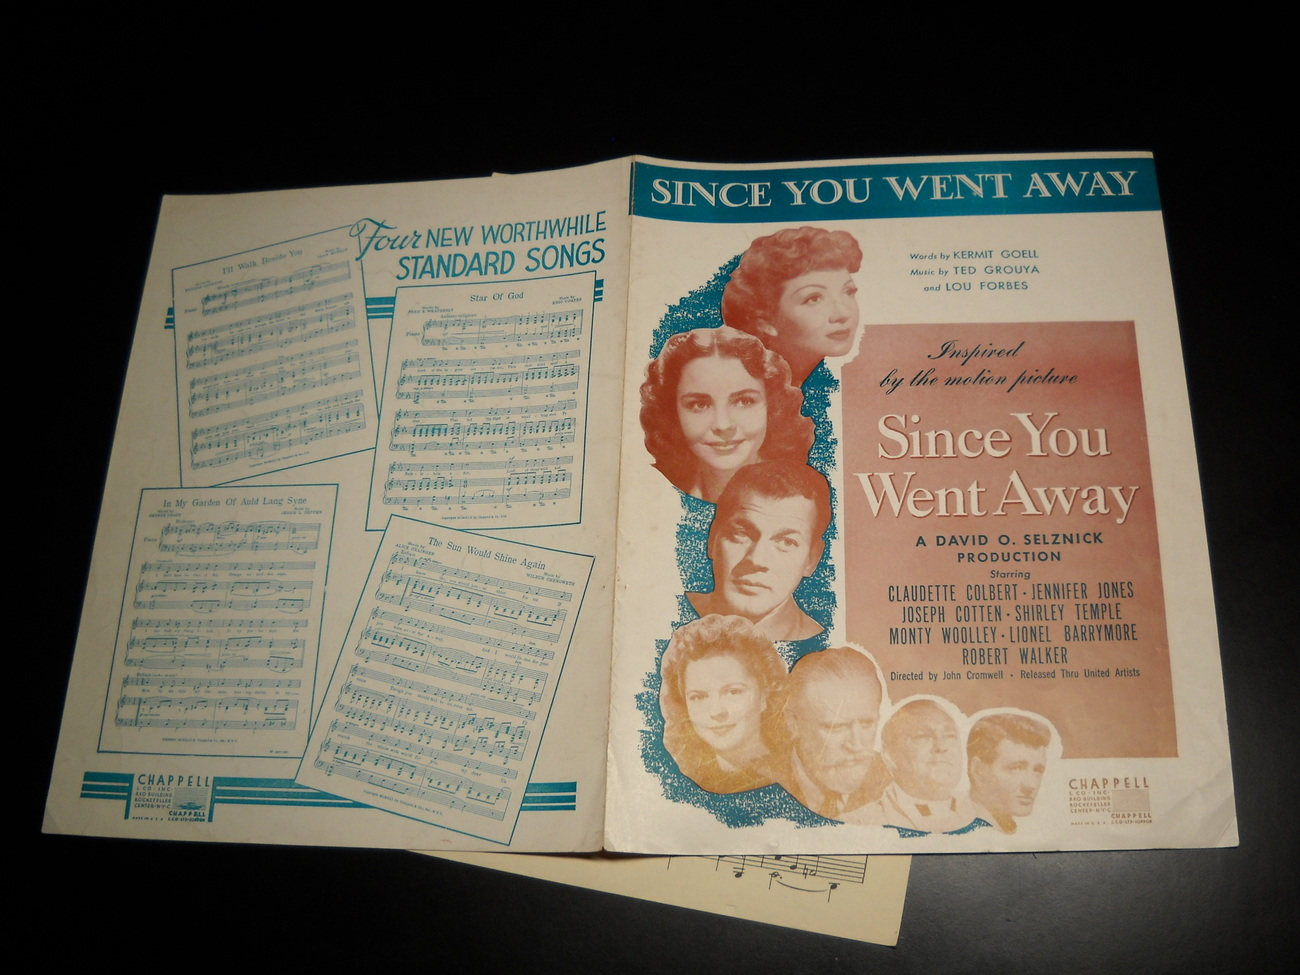 Sheet_music_since_you_went_away_selznick_motion_picture_1944_chappell__04